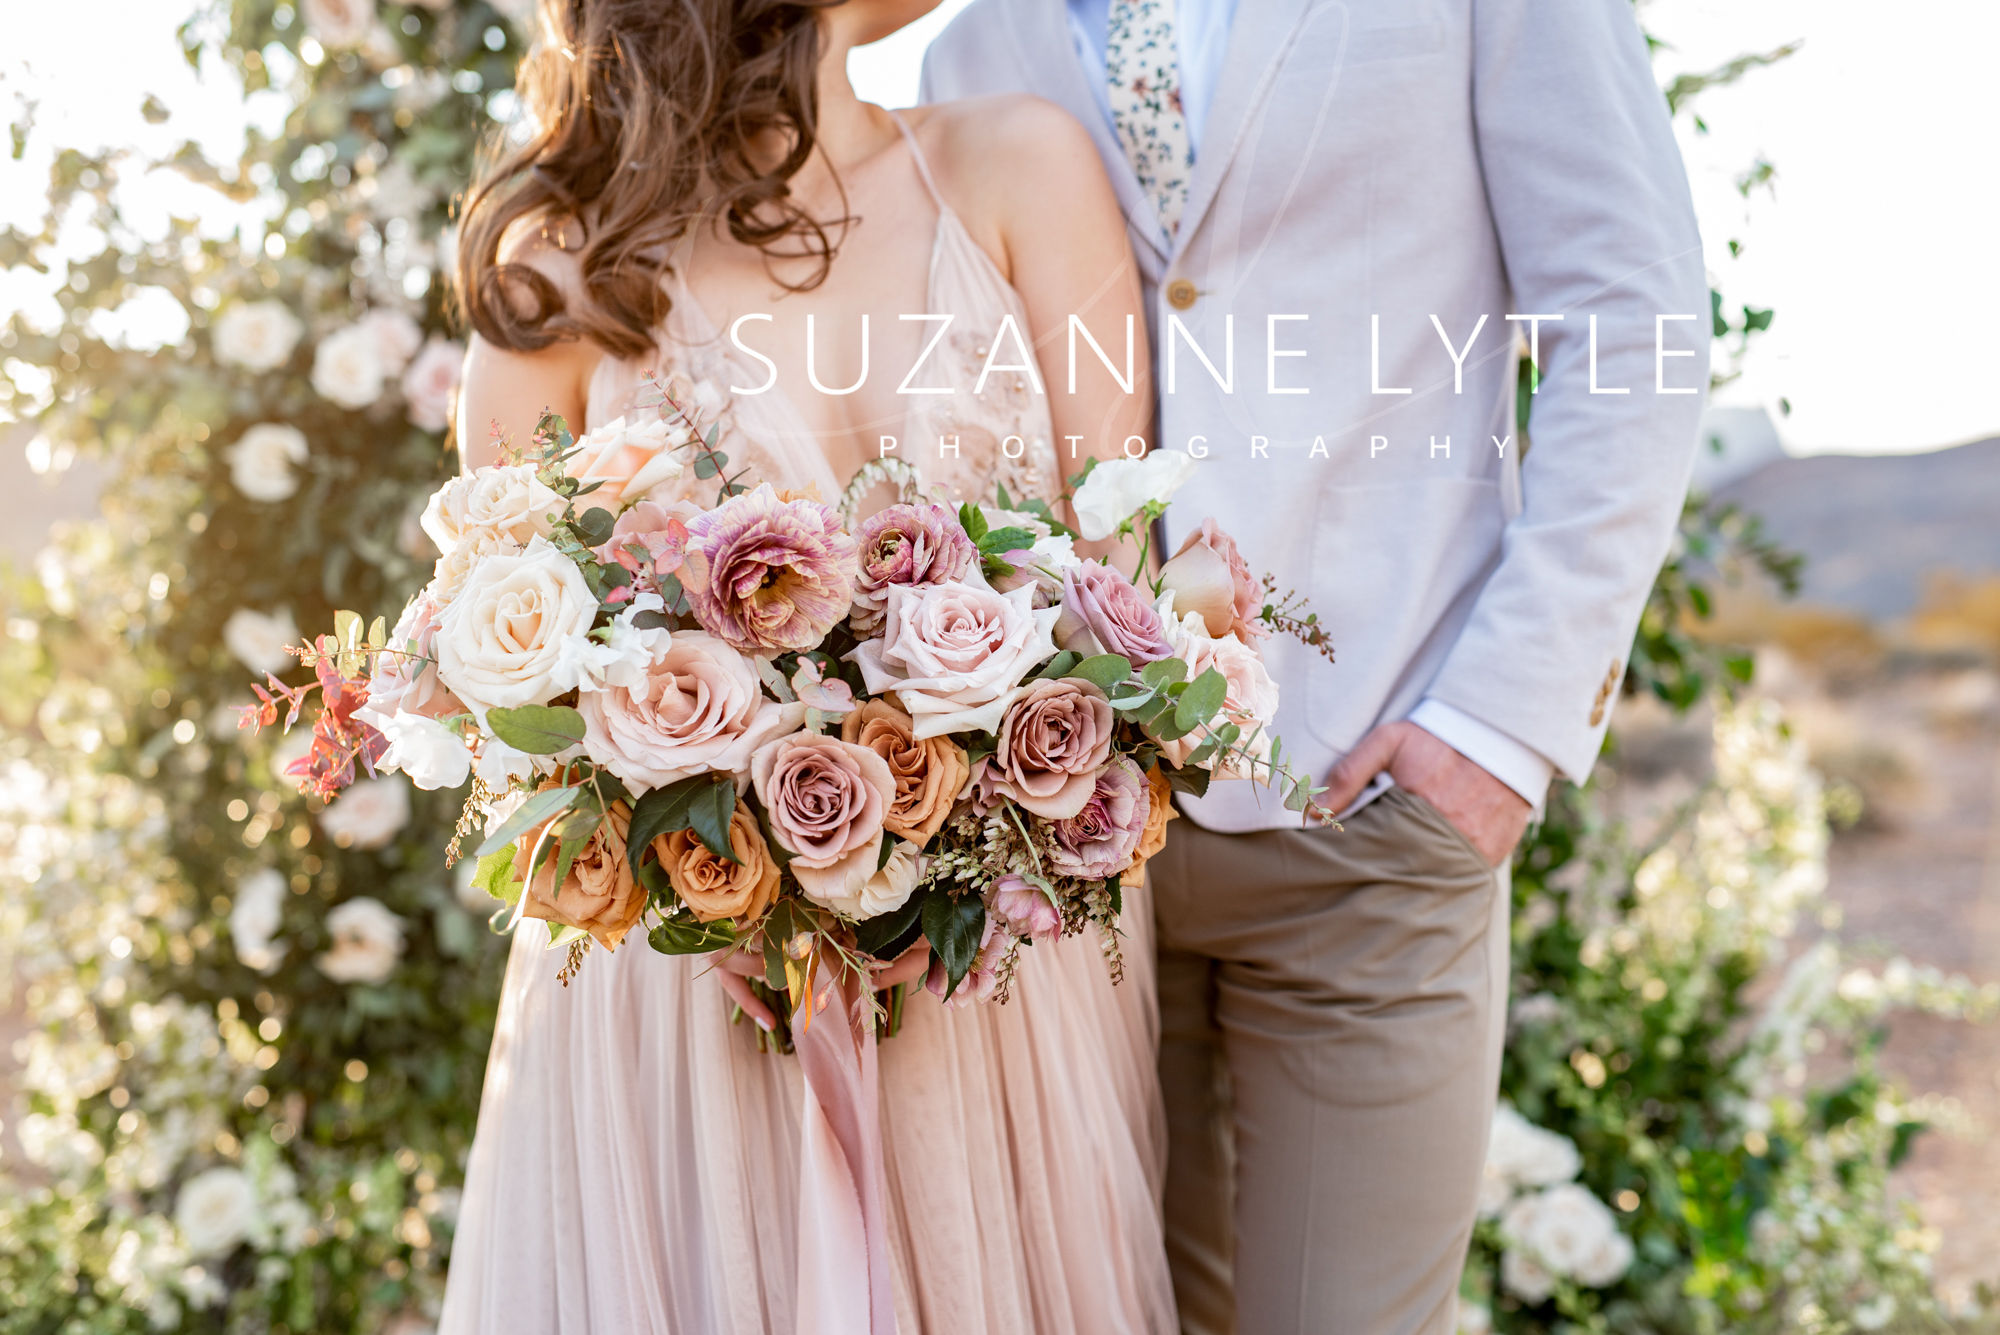 Las Vegas Desert wedding Suzanne Lytle Photography